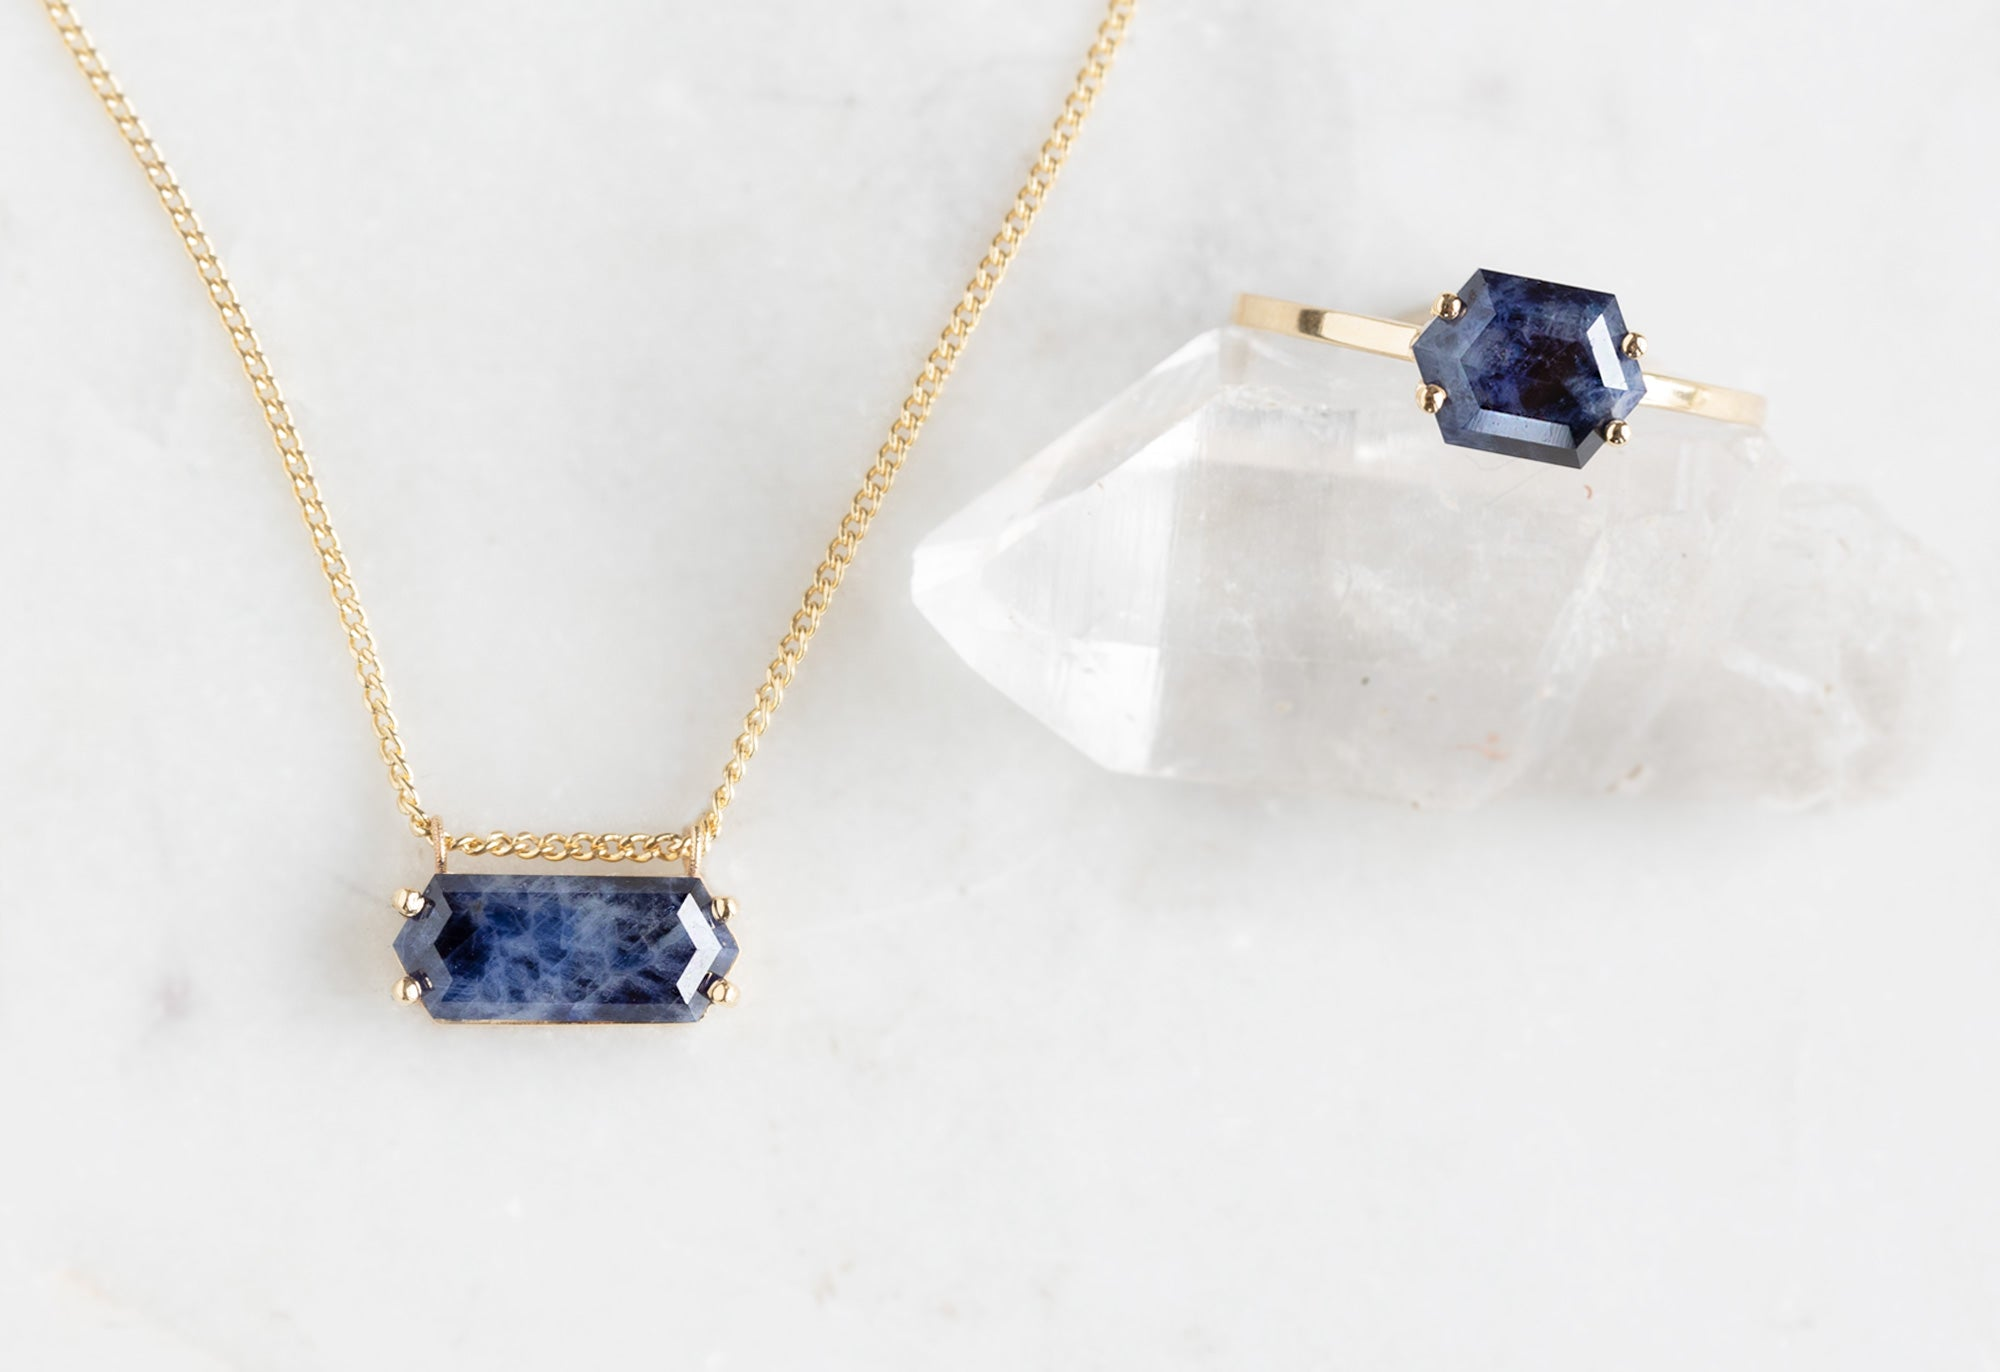 Raw Montana Sapphire Hexagon Ring and Necklace